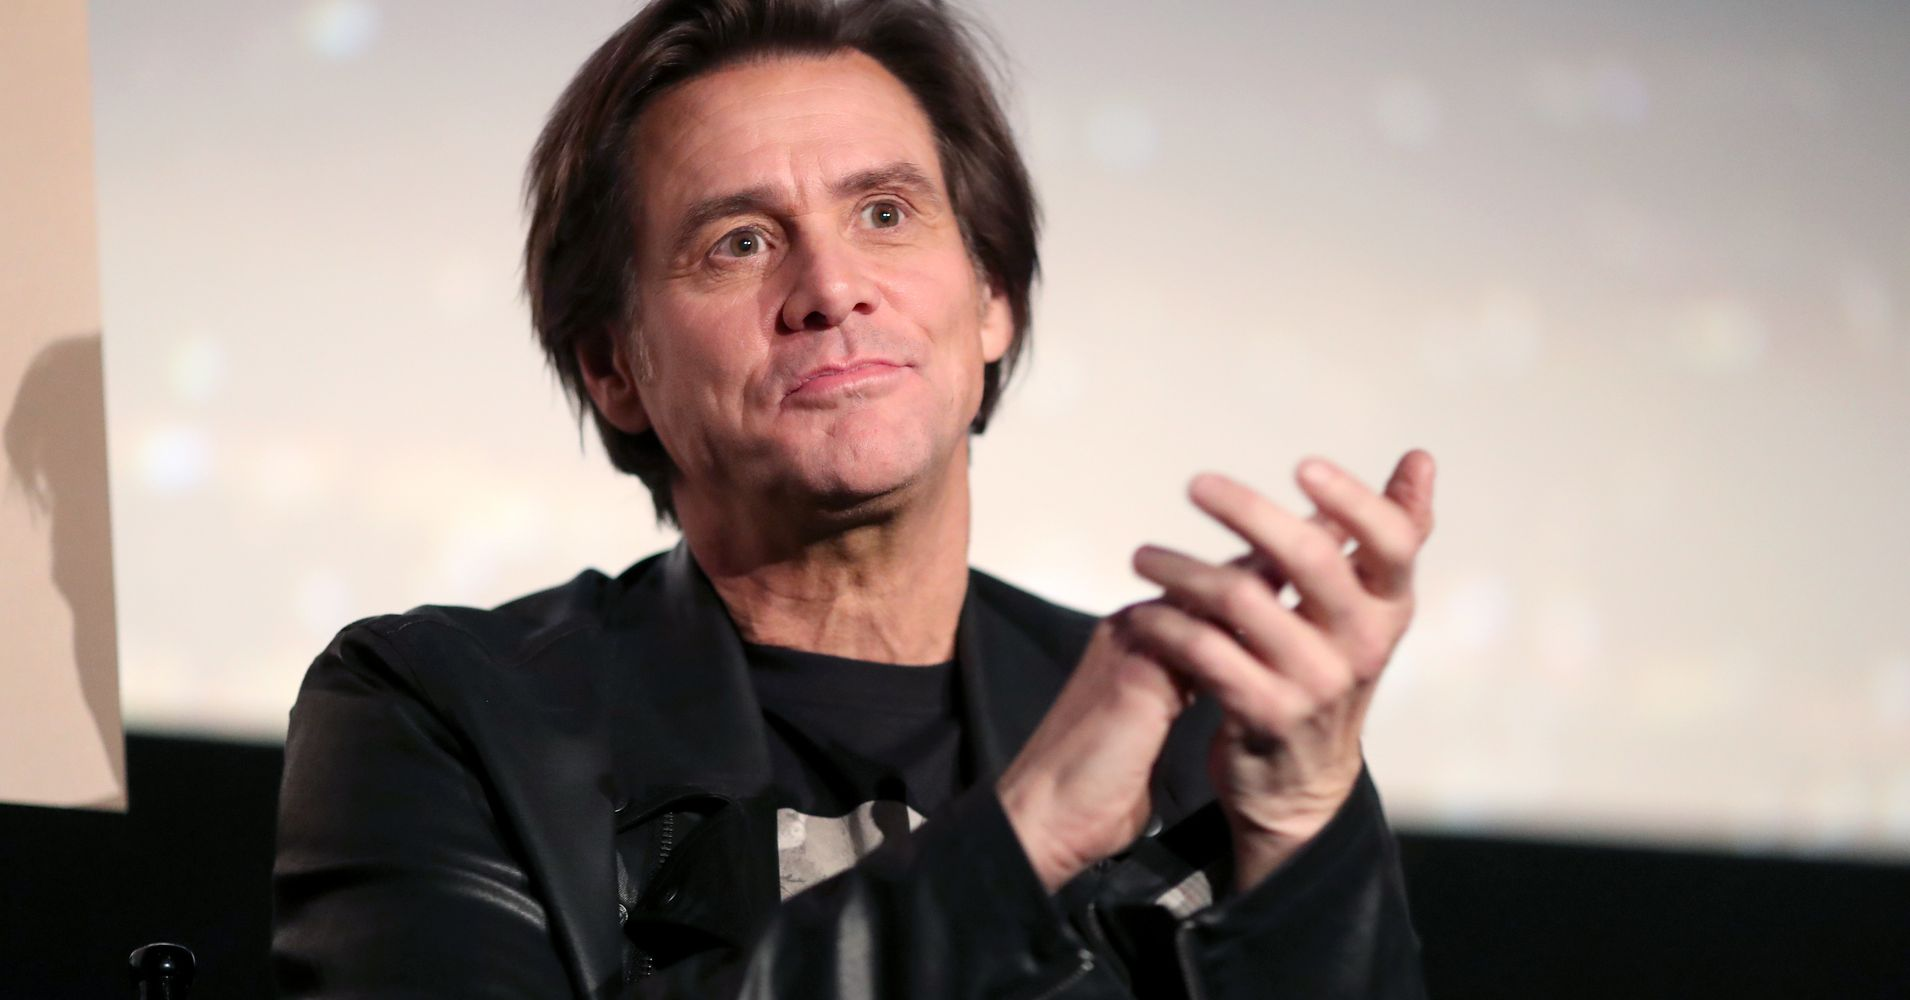 Jim Carrey Painting Depicts Donald Trump Crucifying Jesus